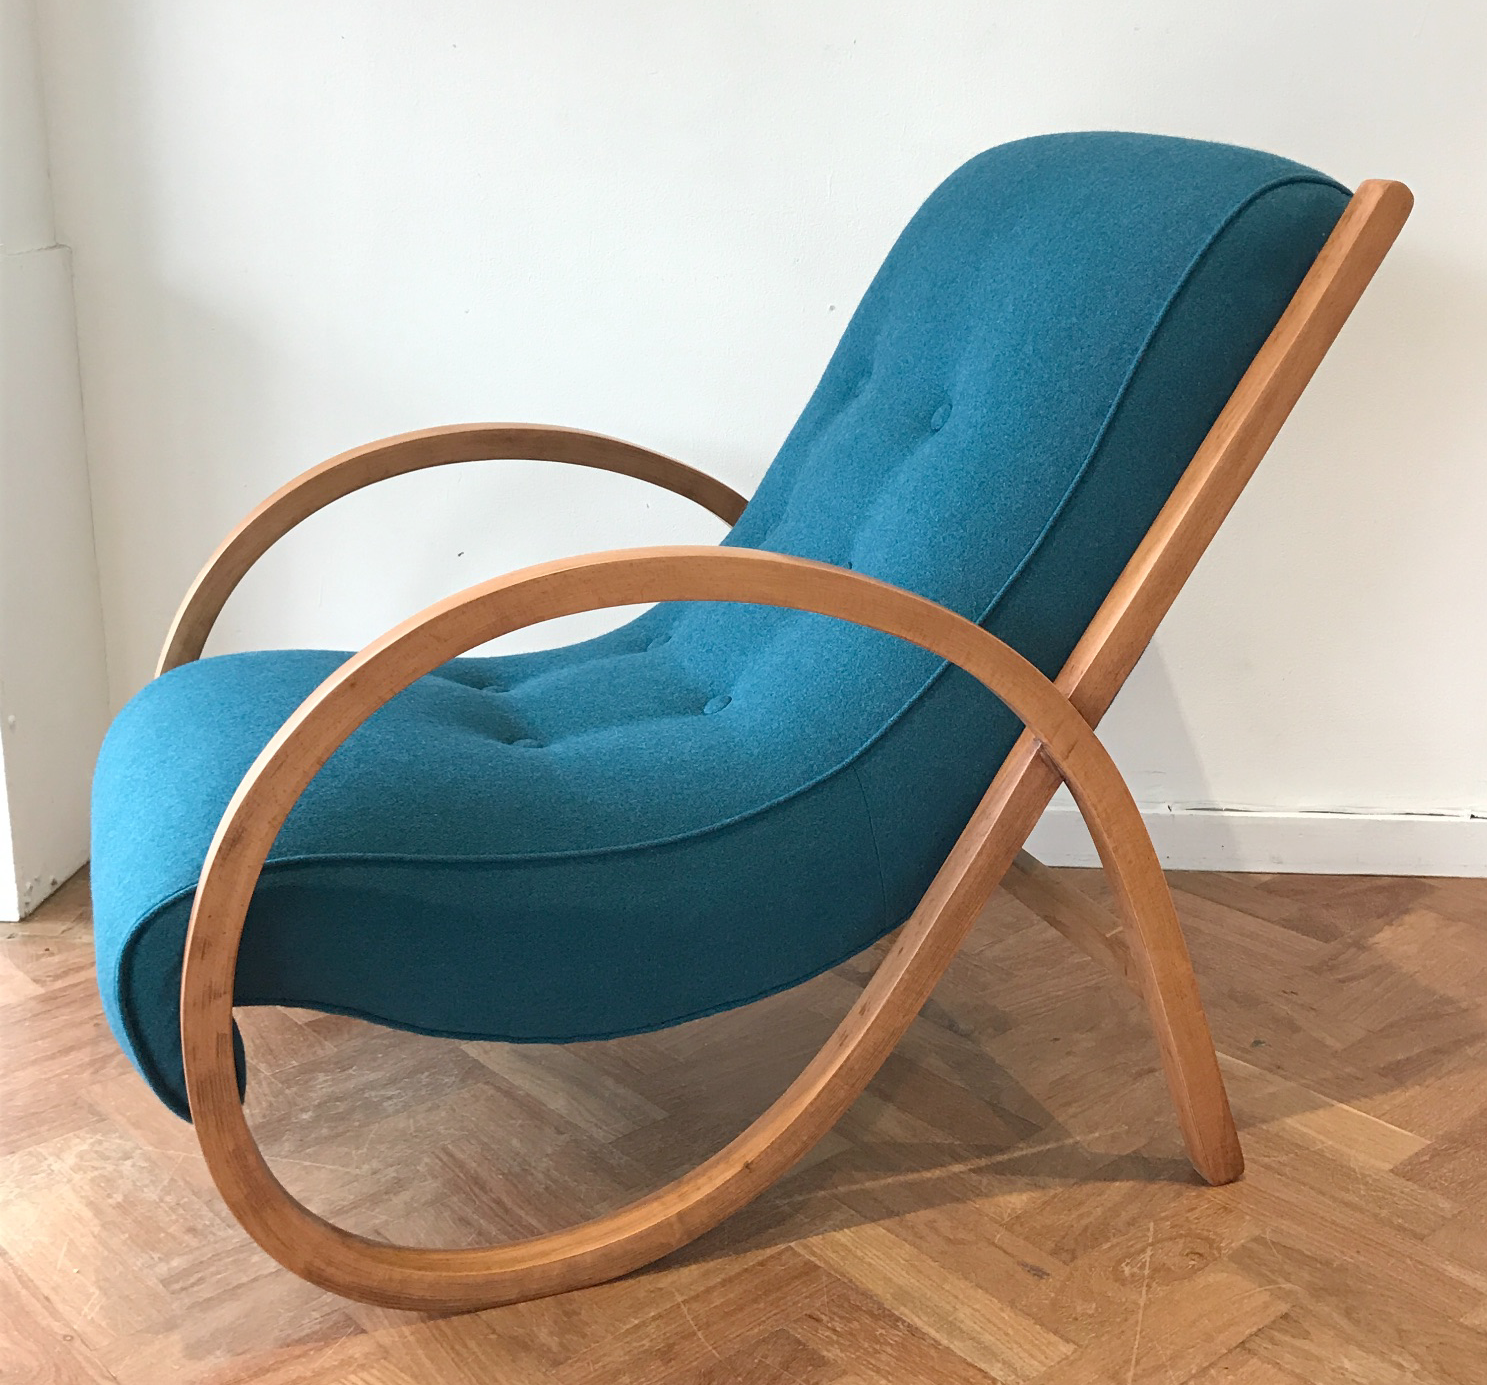 Suparest chair in Camira Synergy wool felt by Spring Upholstery Brighton